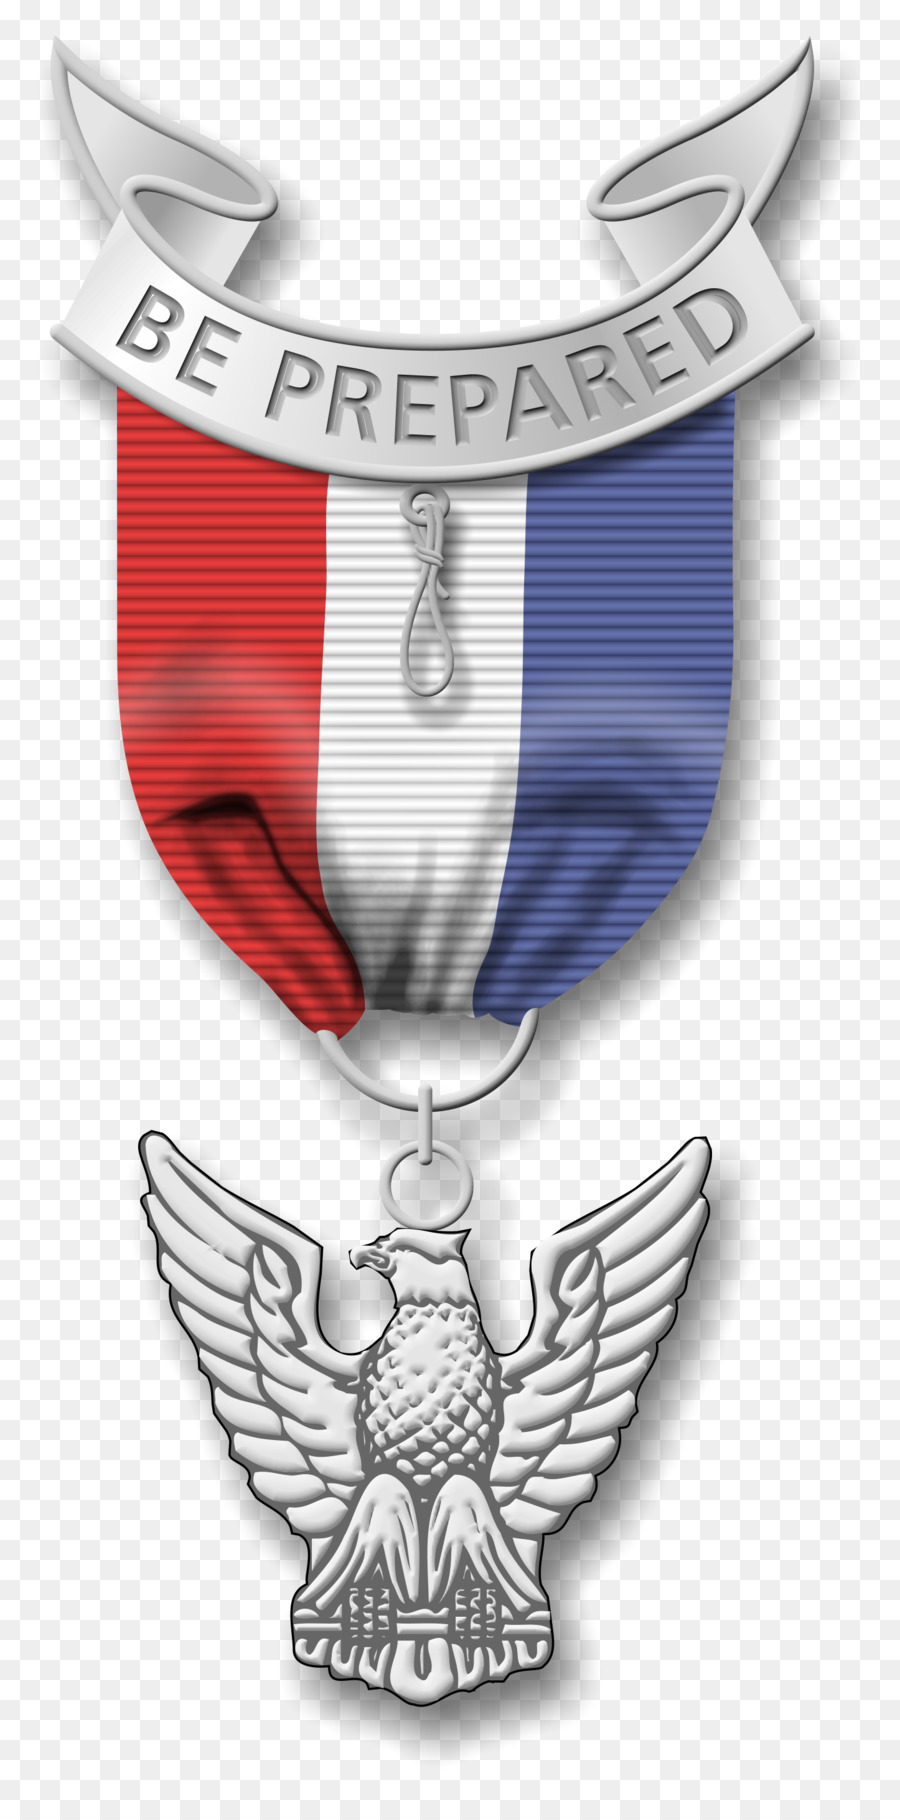 Eagle Scout Boy Scouts of America Scouting Medal Clip art - medal ...